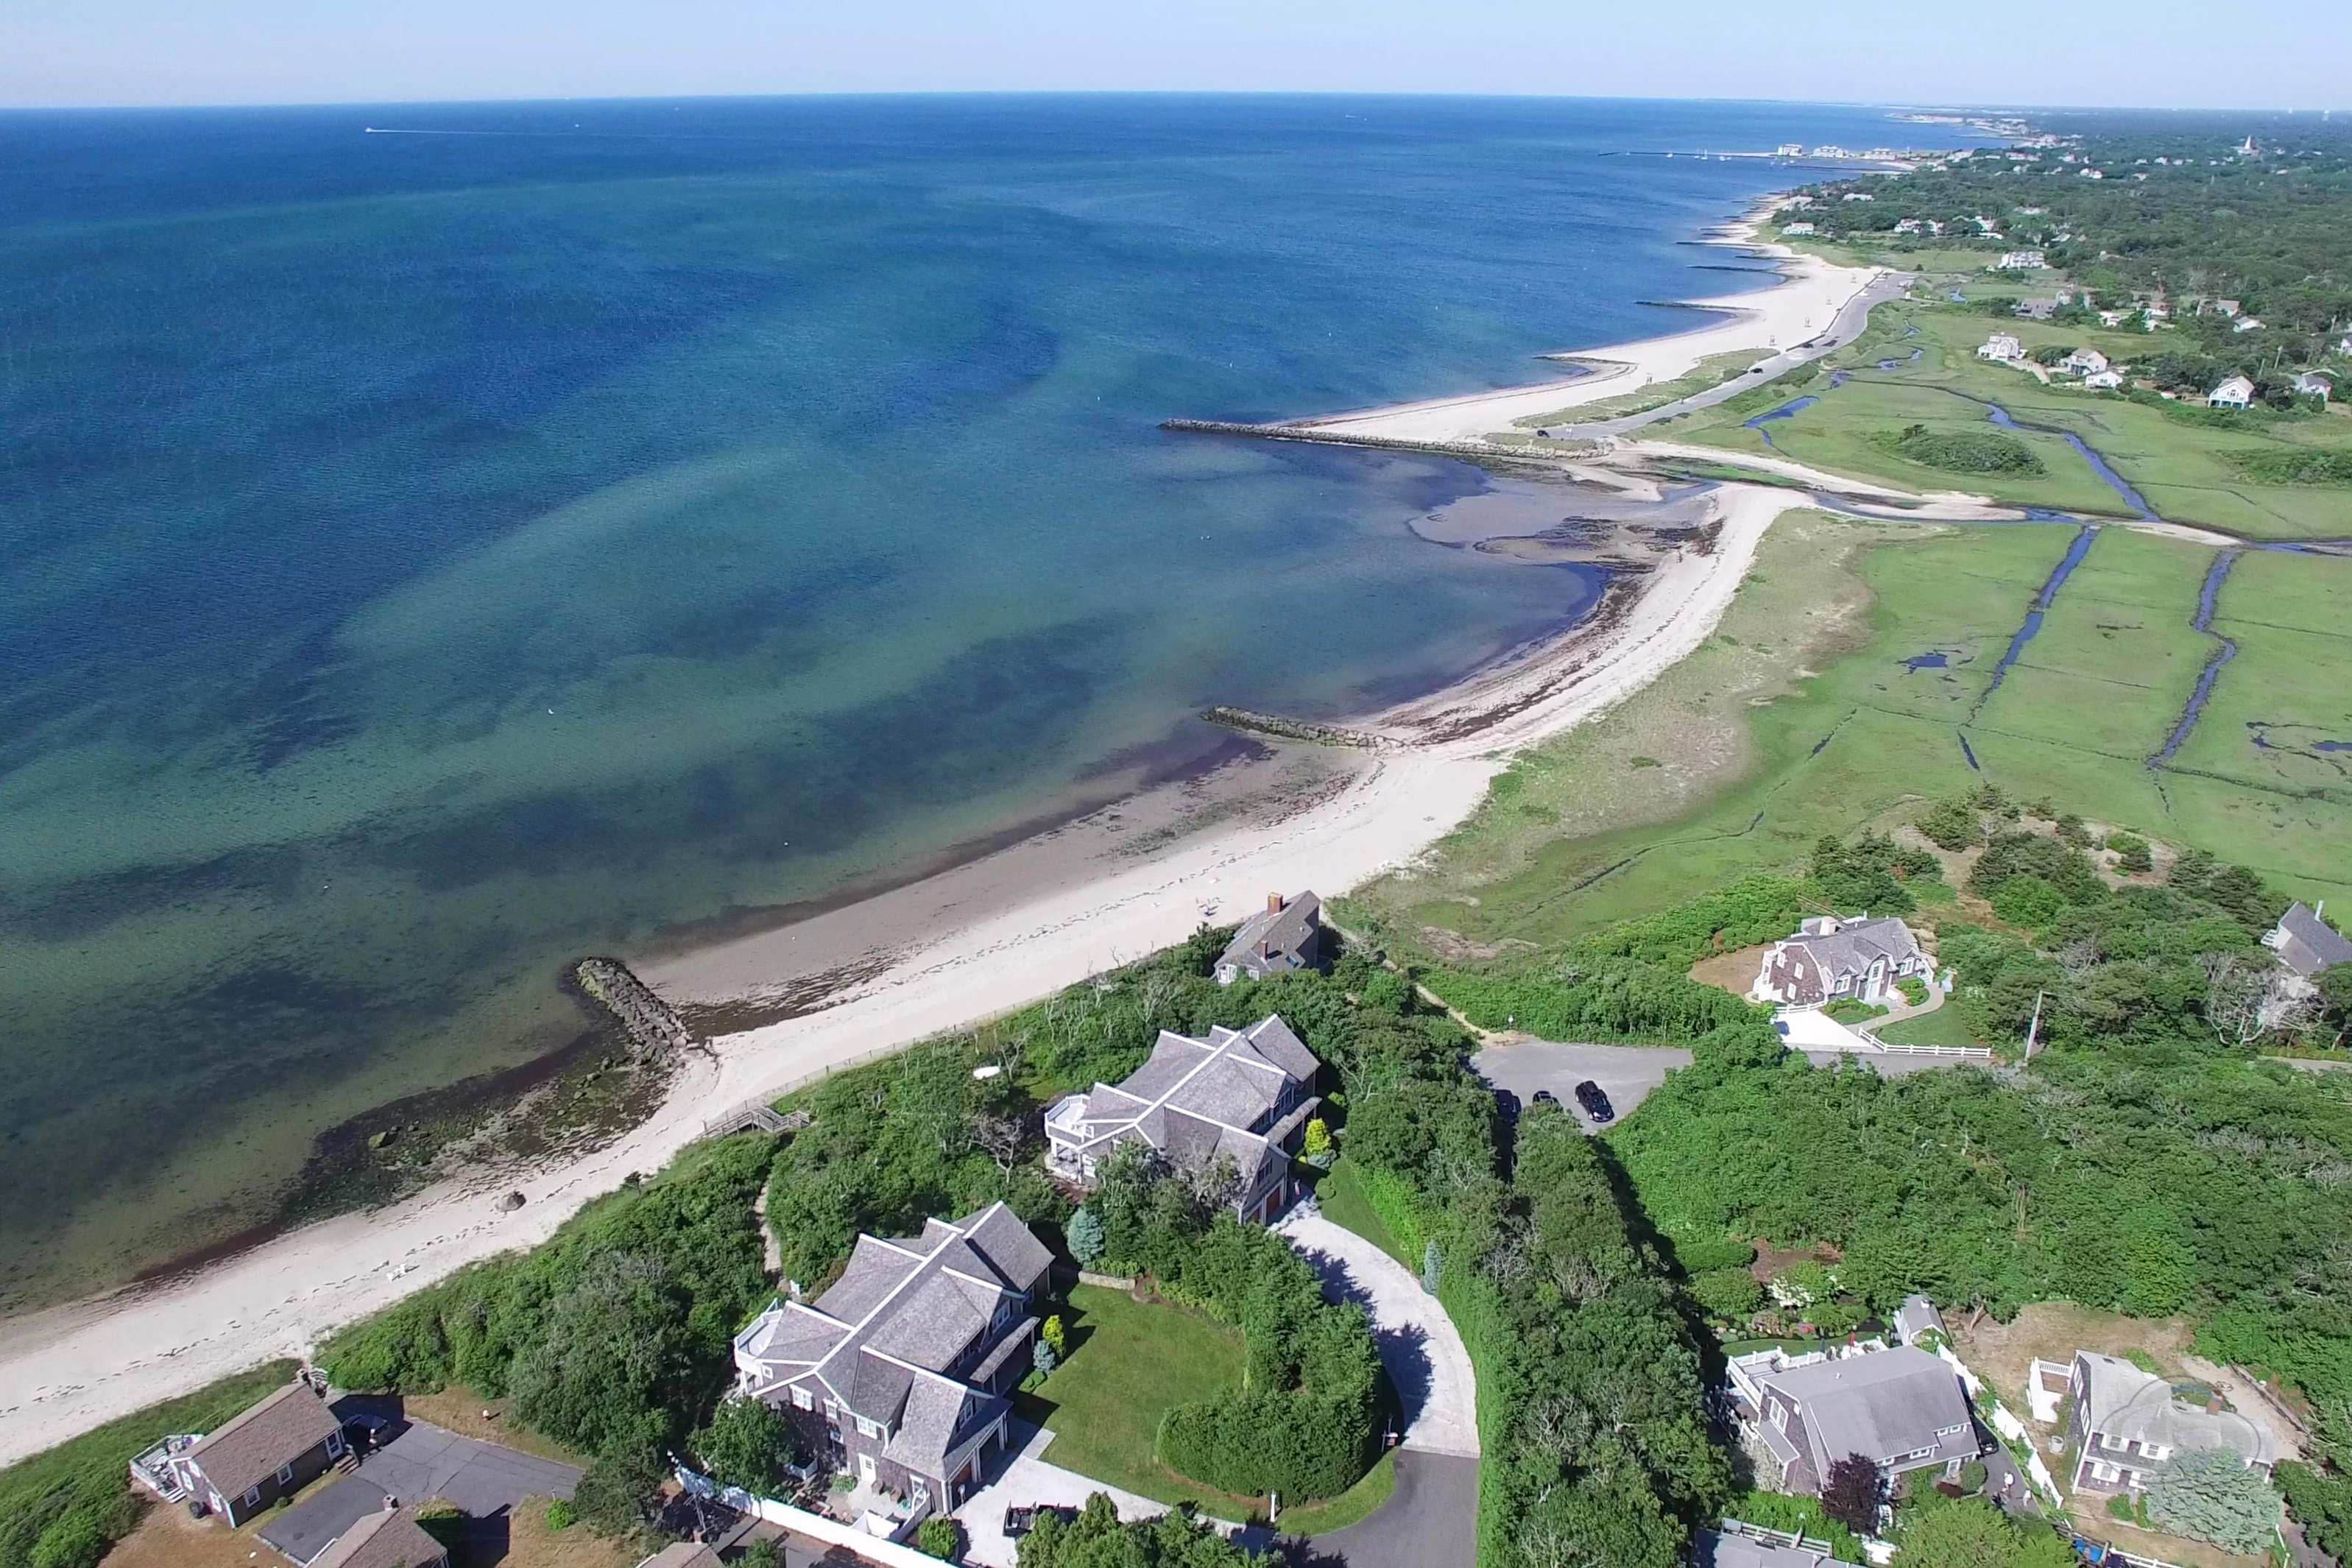 60 Sea Mist Lane, Chatham, MA 02659, South Chatham - SOLD LISTING, MLS #  21601126 | Robert Paul Properties